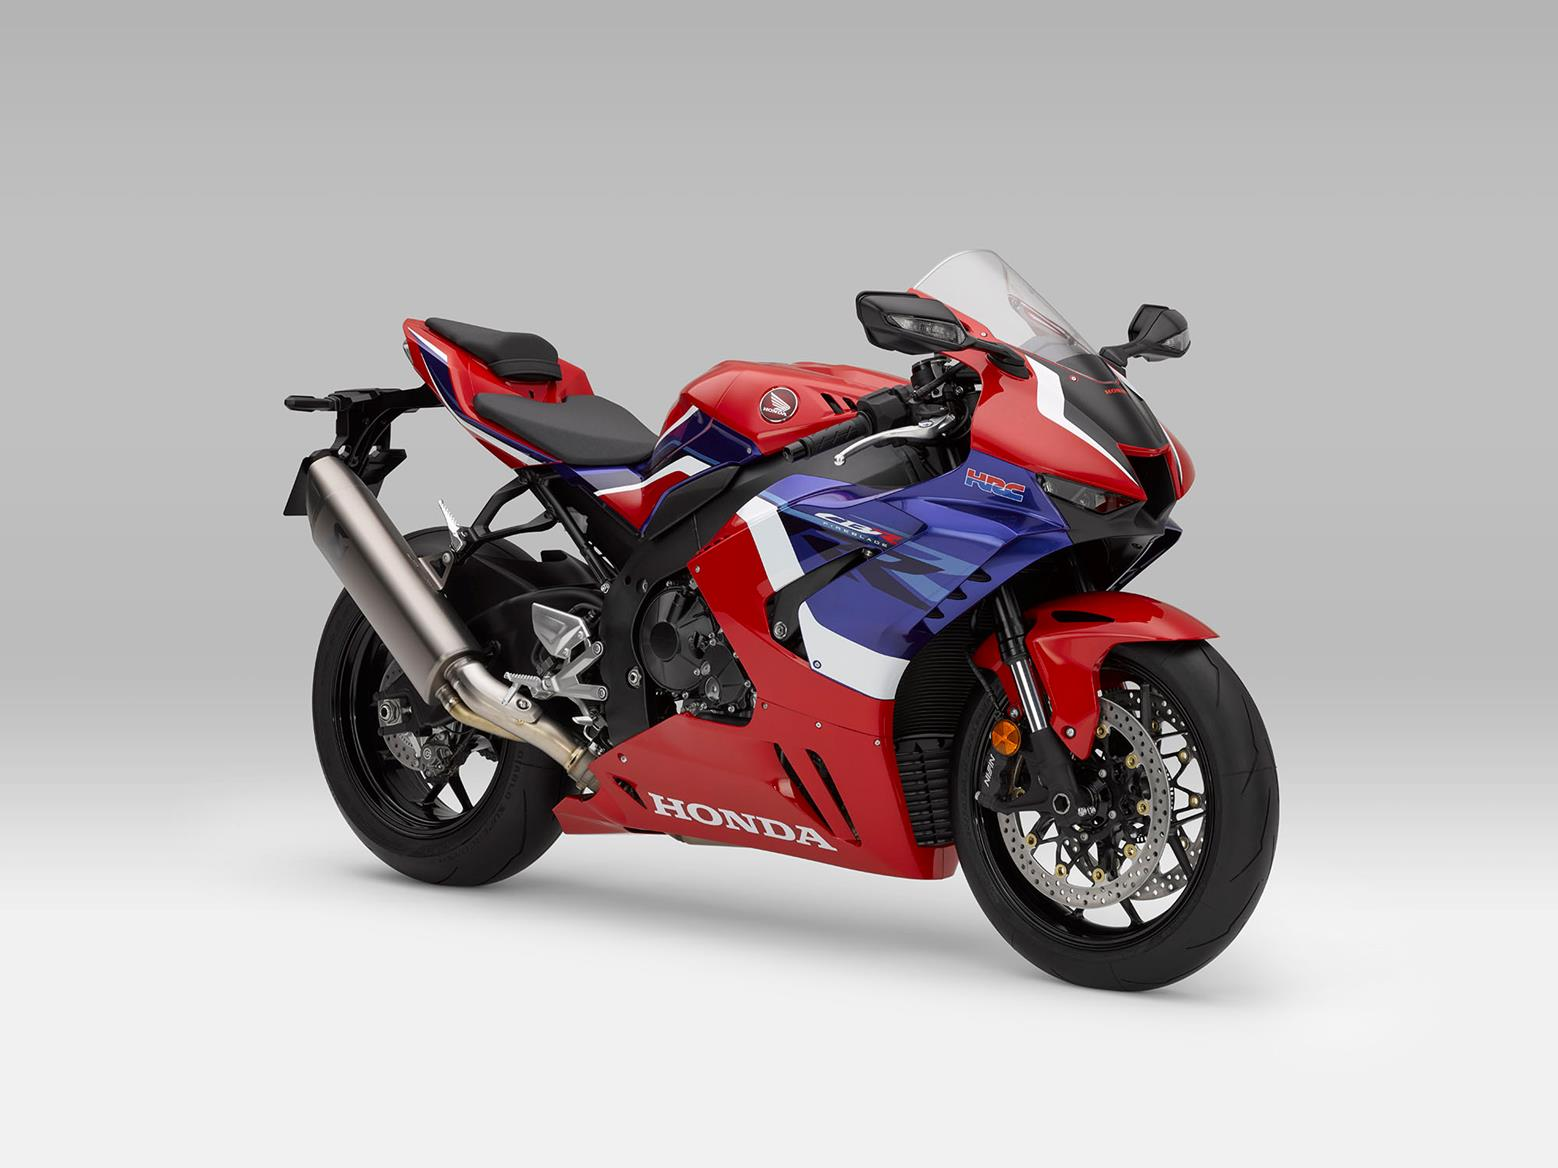 Honda pull the wraps off 214bhp 2020 Fireblade RR and SP